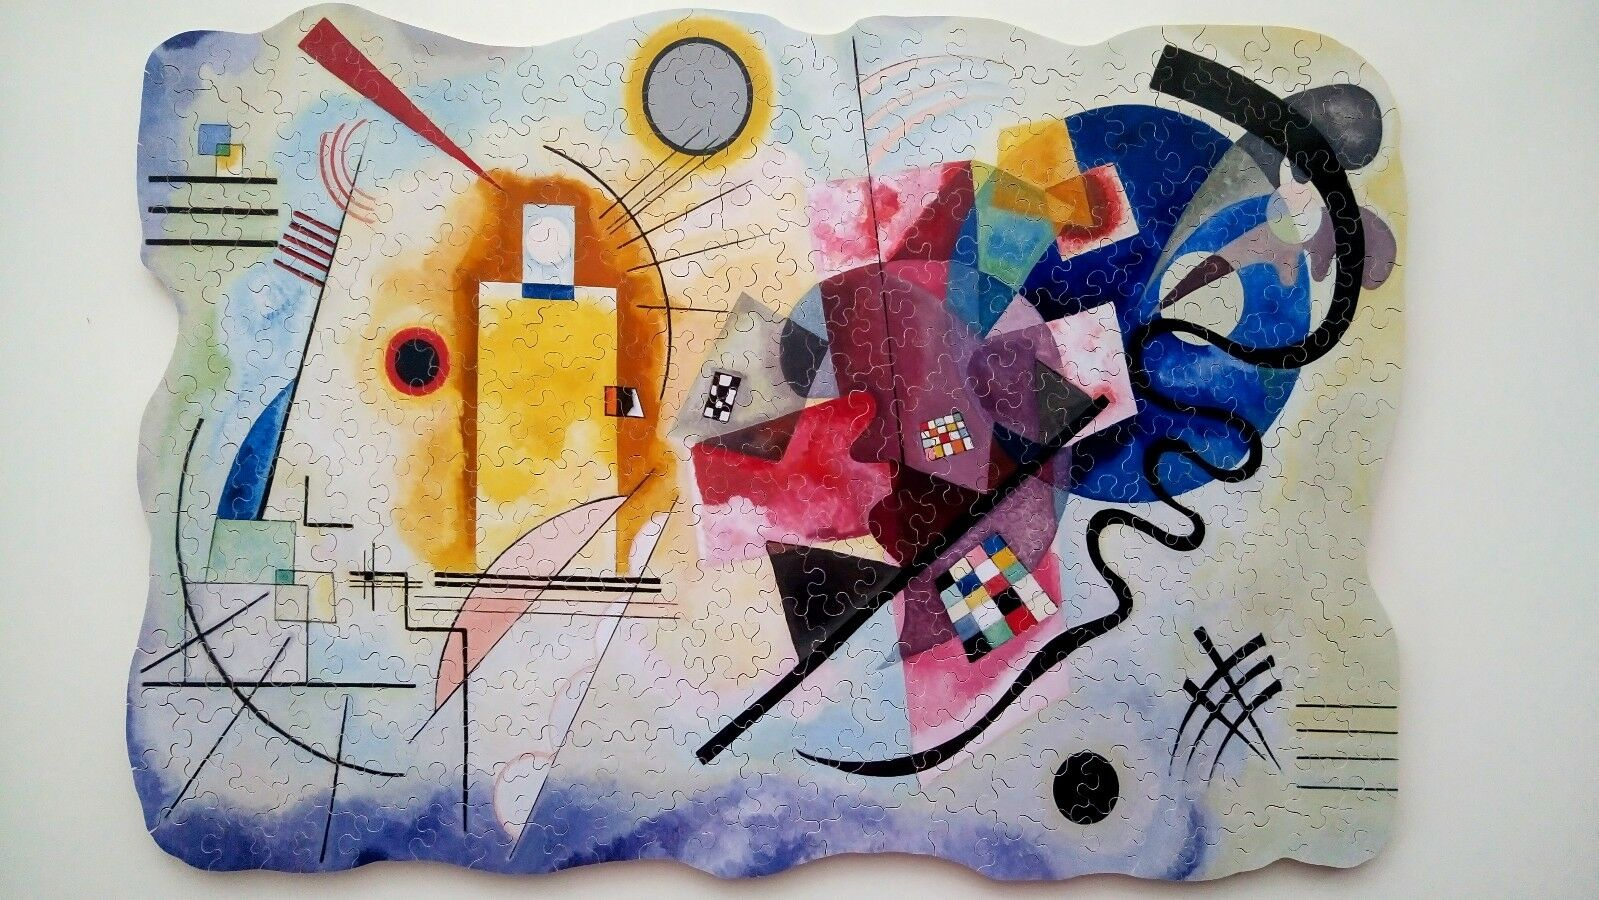 Nuovo Hand Cut Wooden Jigsaw Puzzle giallo rosso blu by Wassily Kandinsky in Wooden